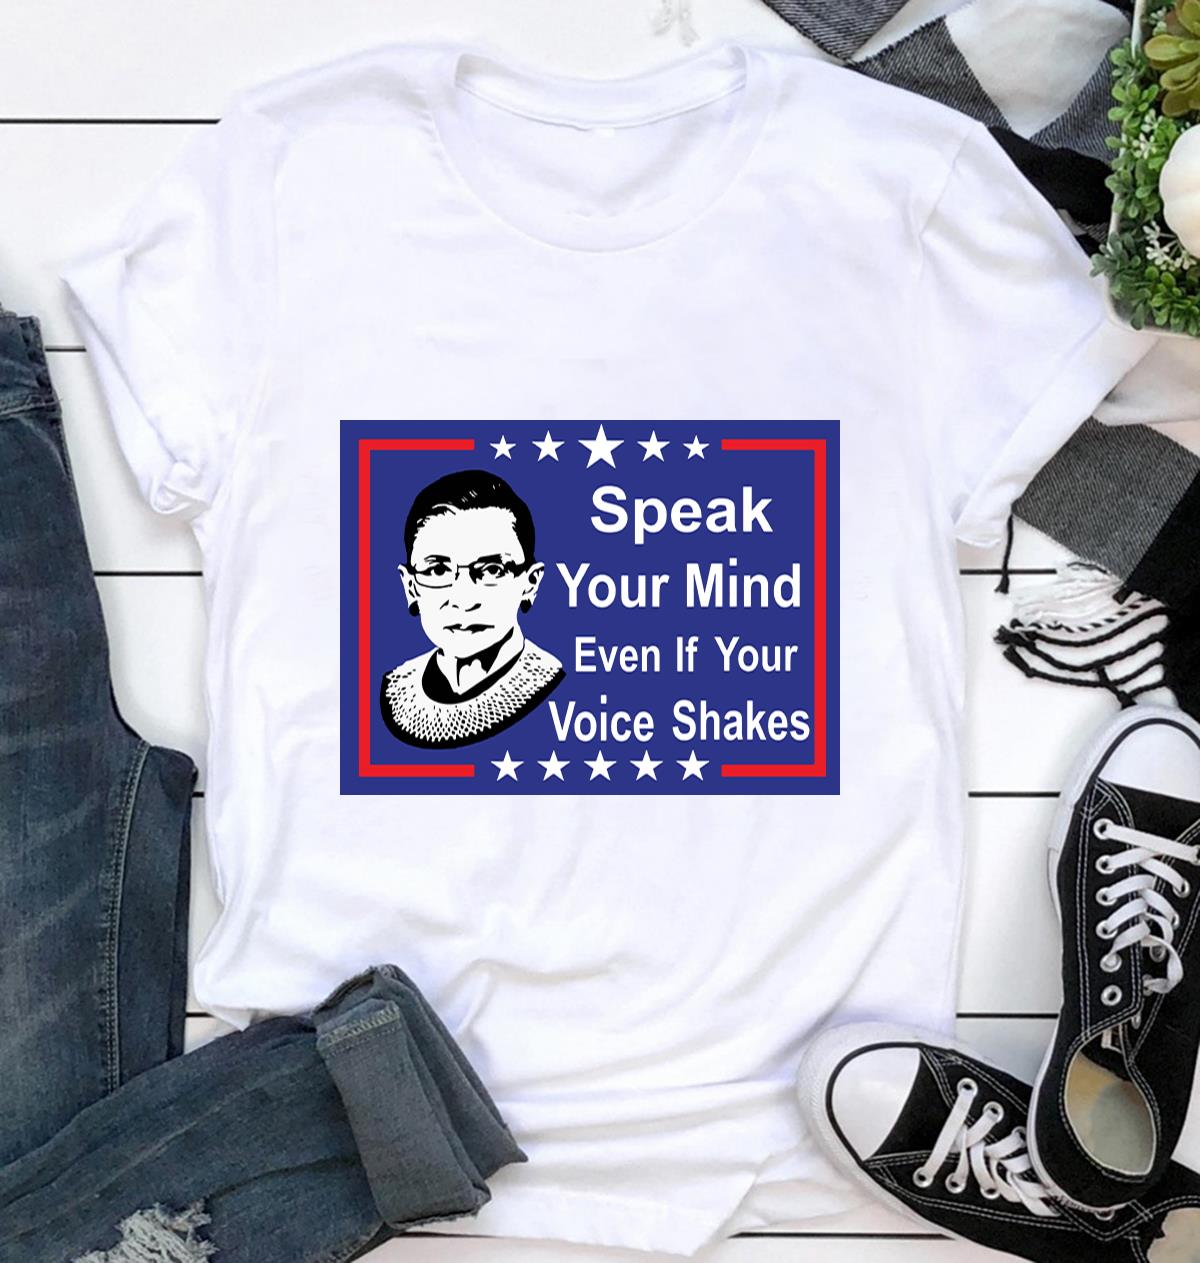 Speak your mind even if your voice shakes yard sign ca